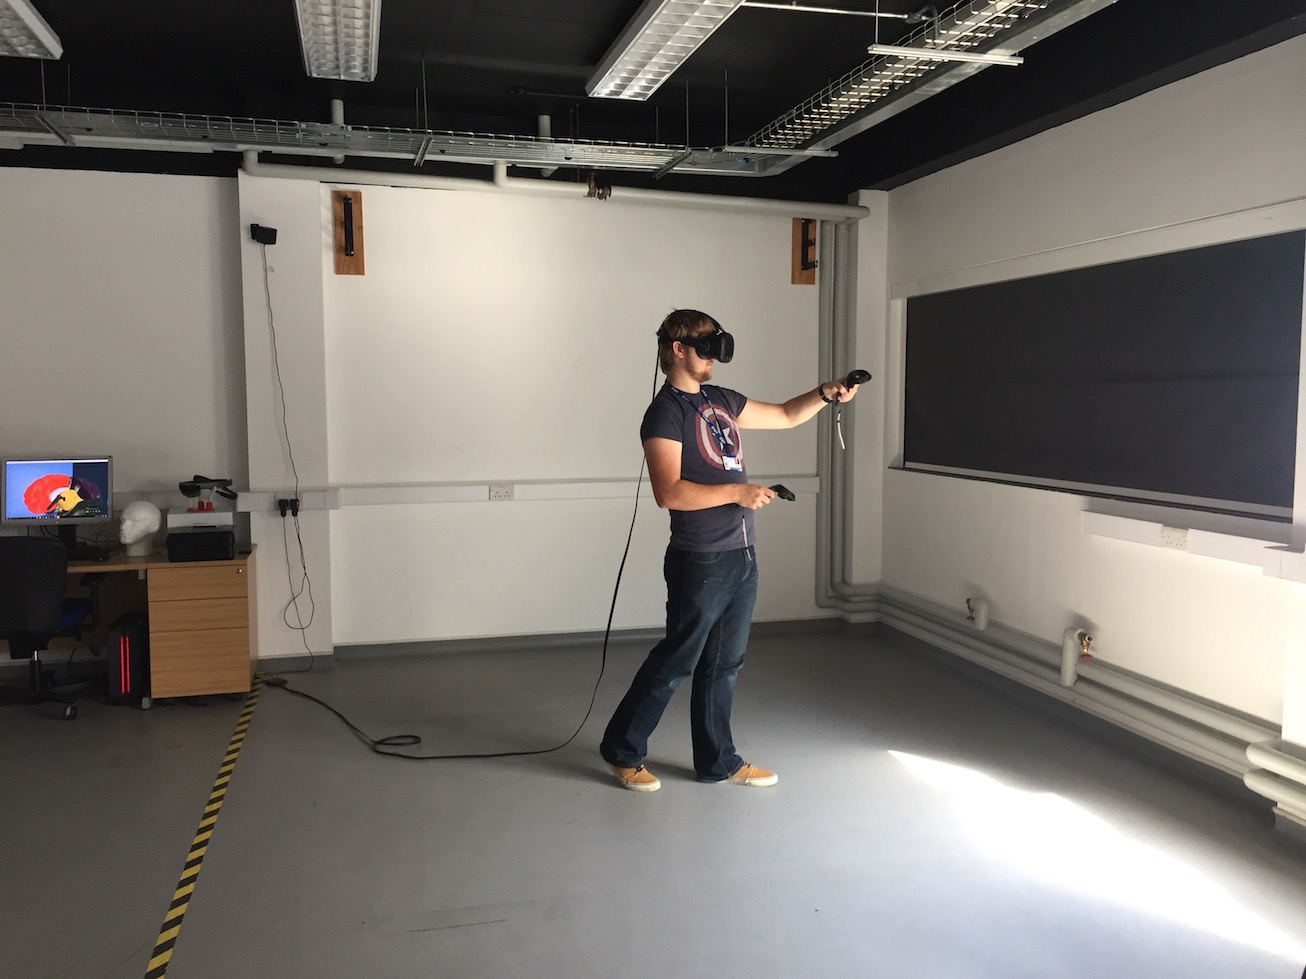 Using the HTC VIVE HMD